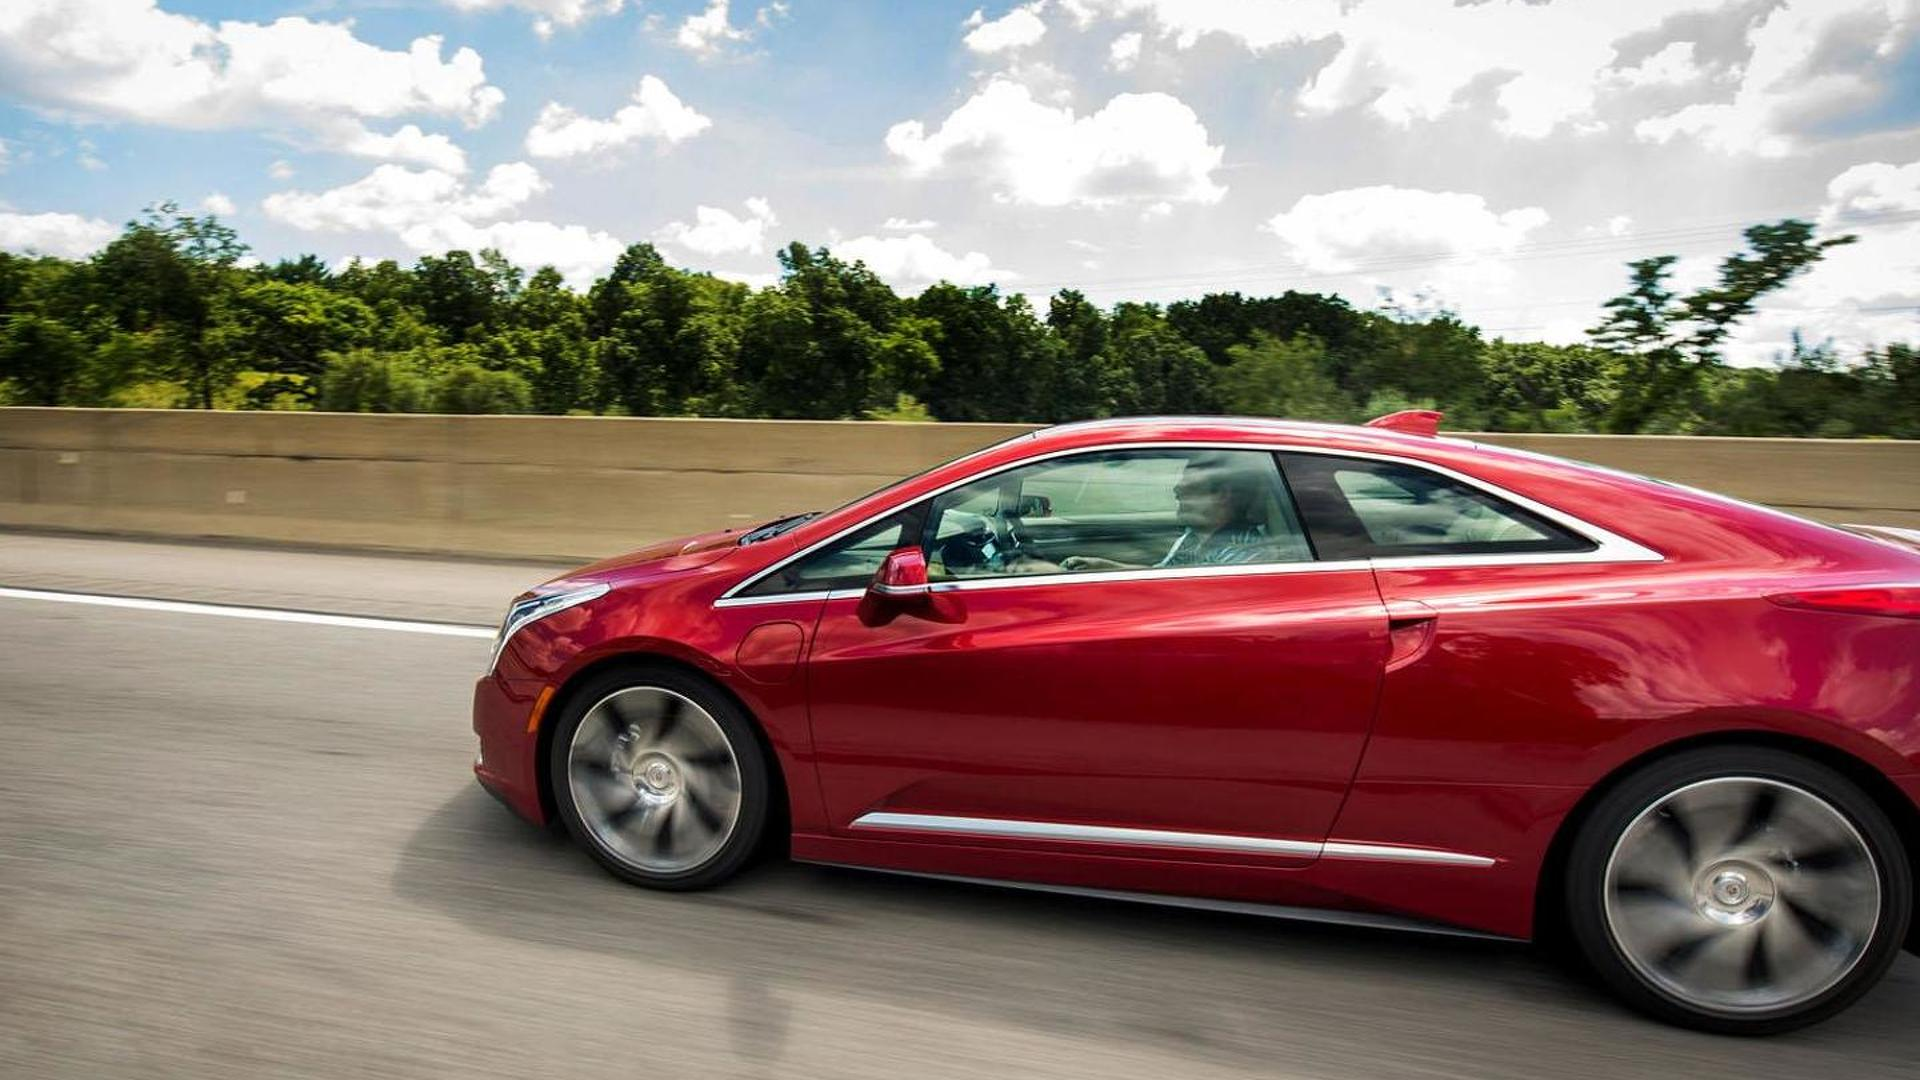 2014 Cadillac ELR priced at $75,995 - more than twice as much as the Volt